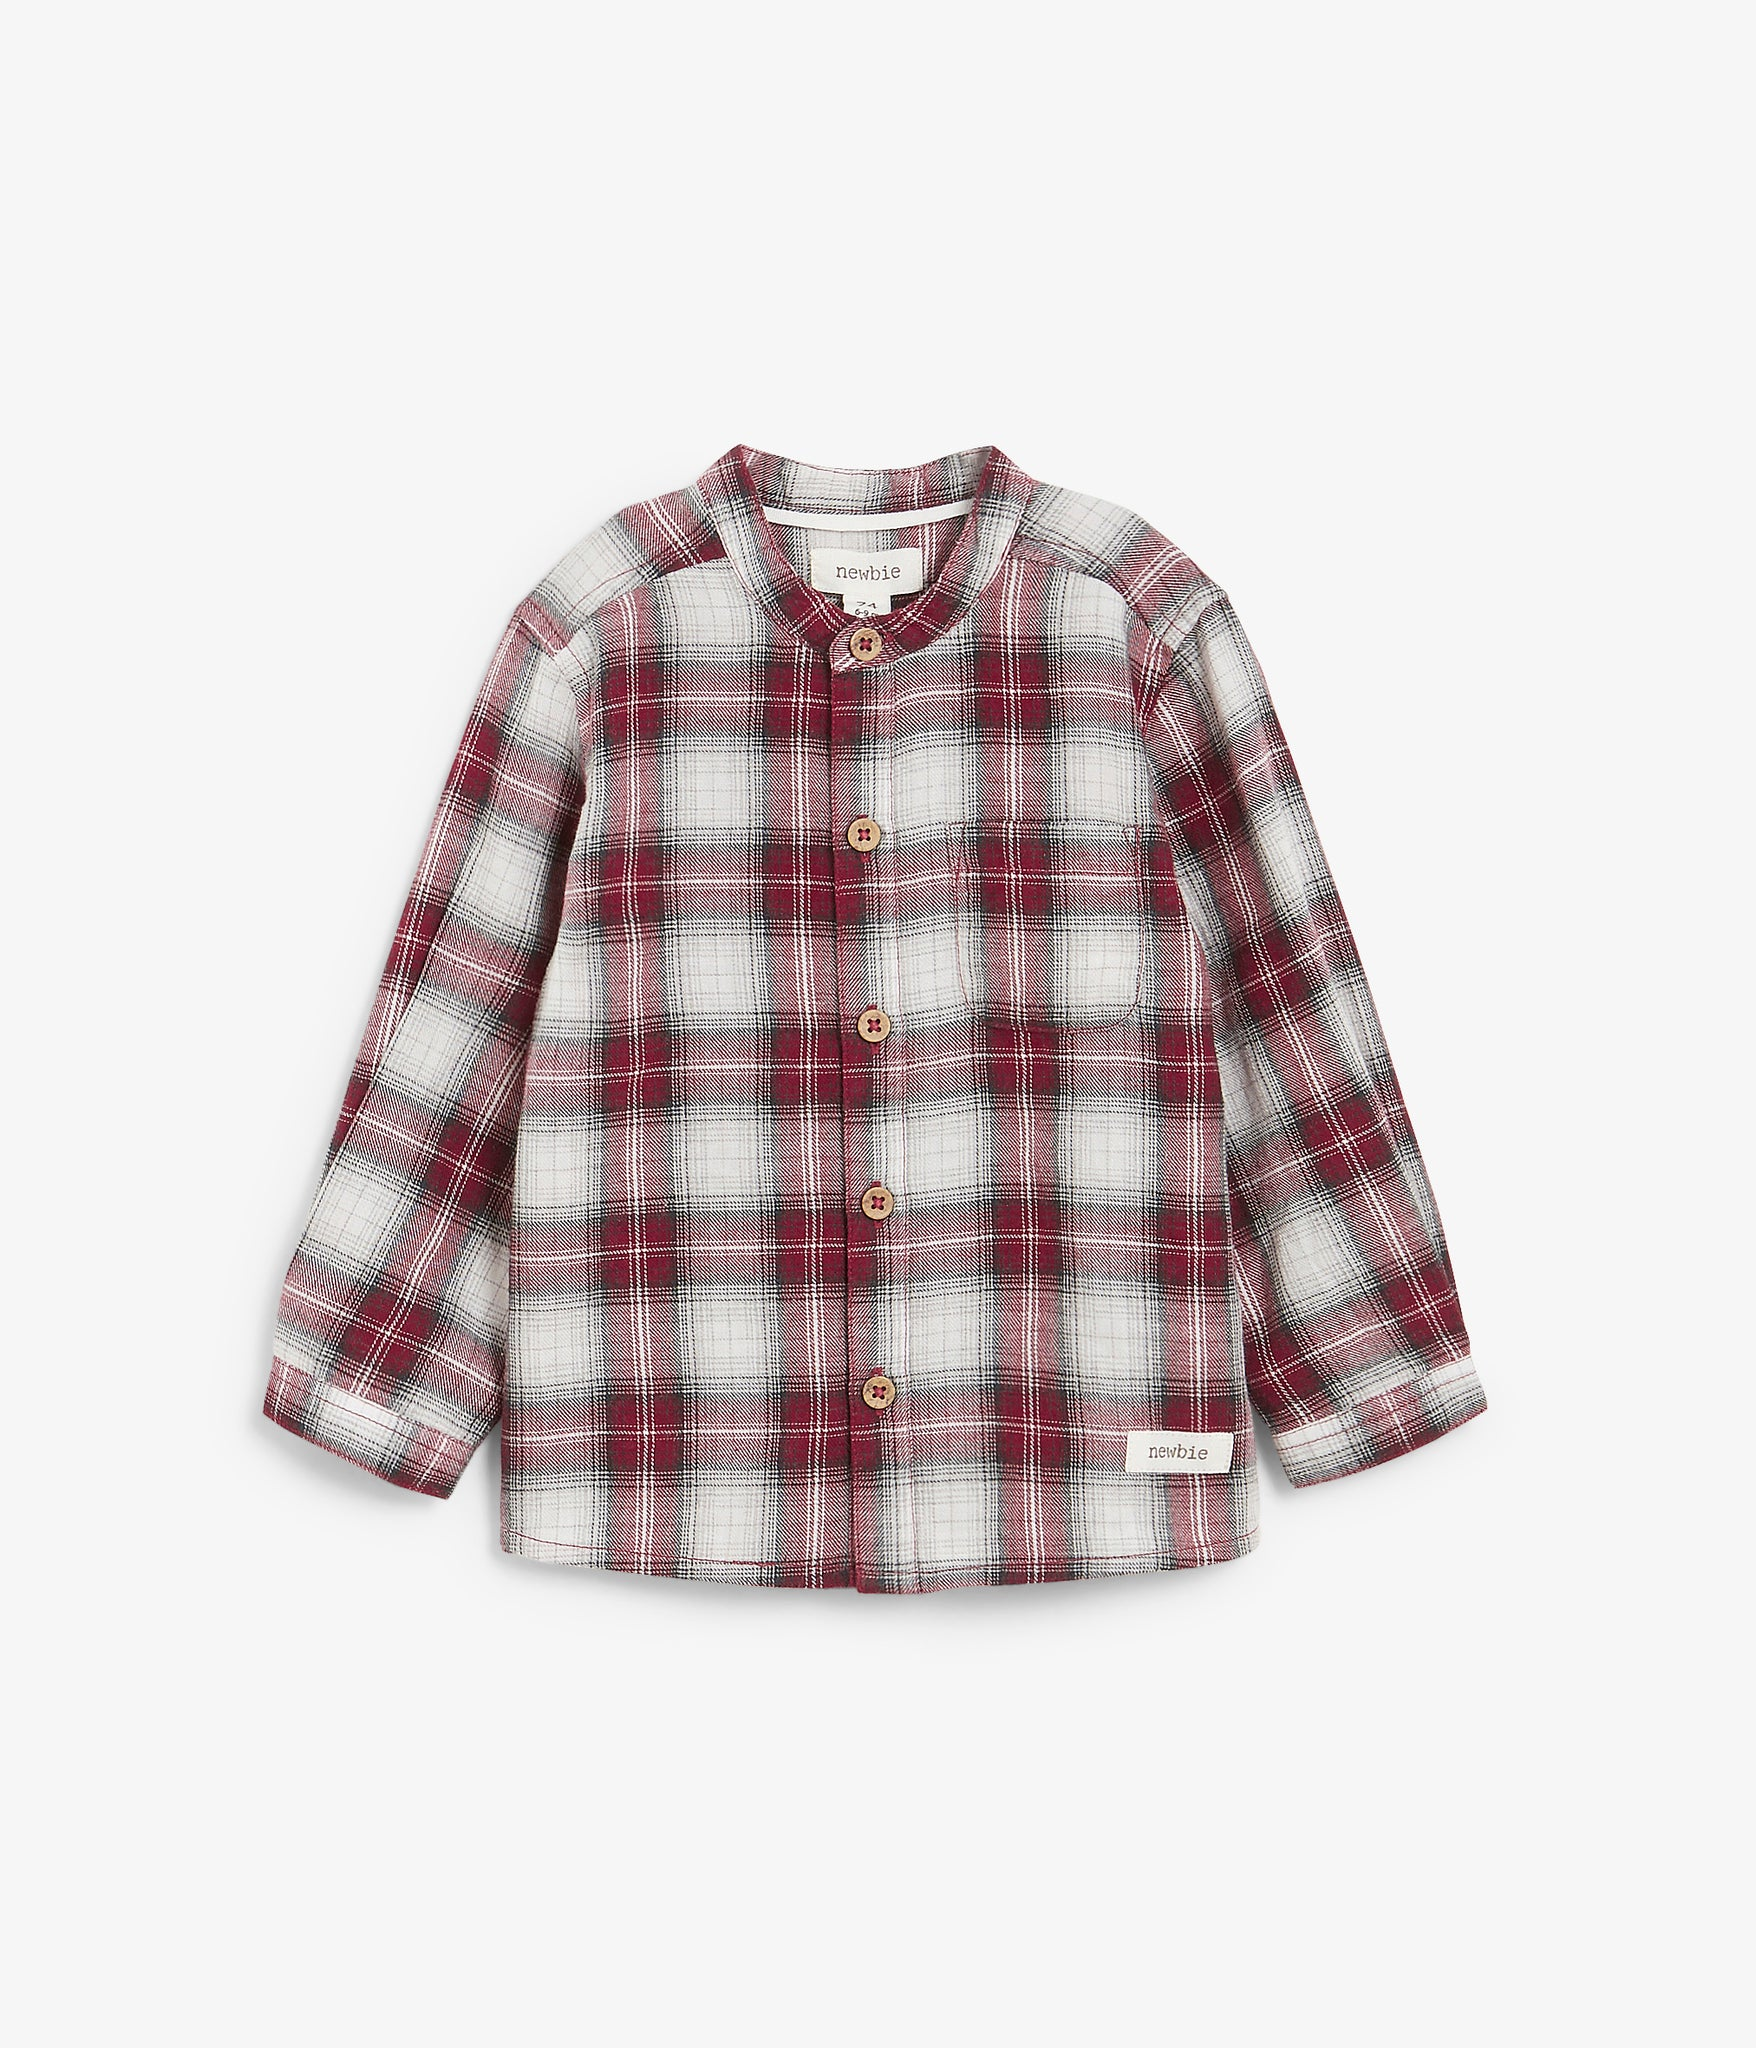 Baby red & white check pattern shirt